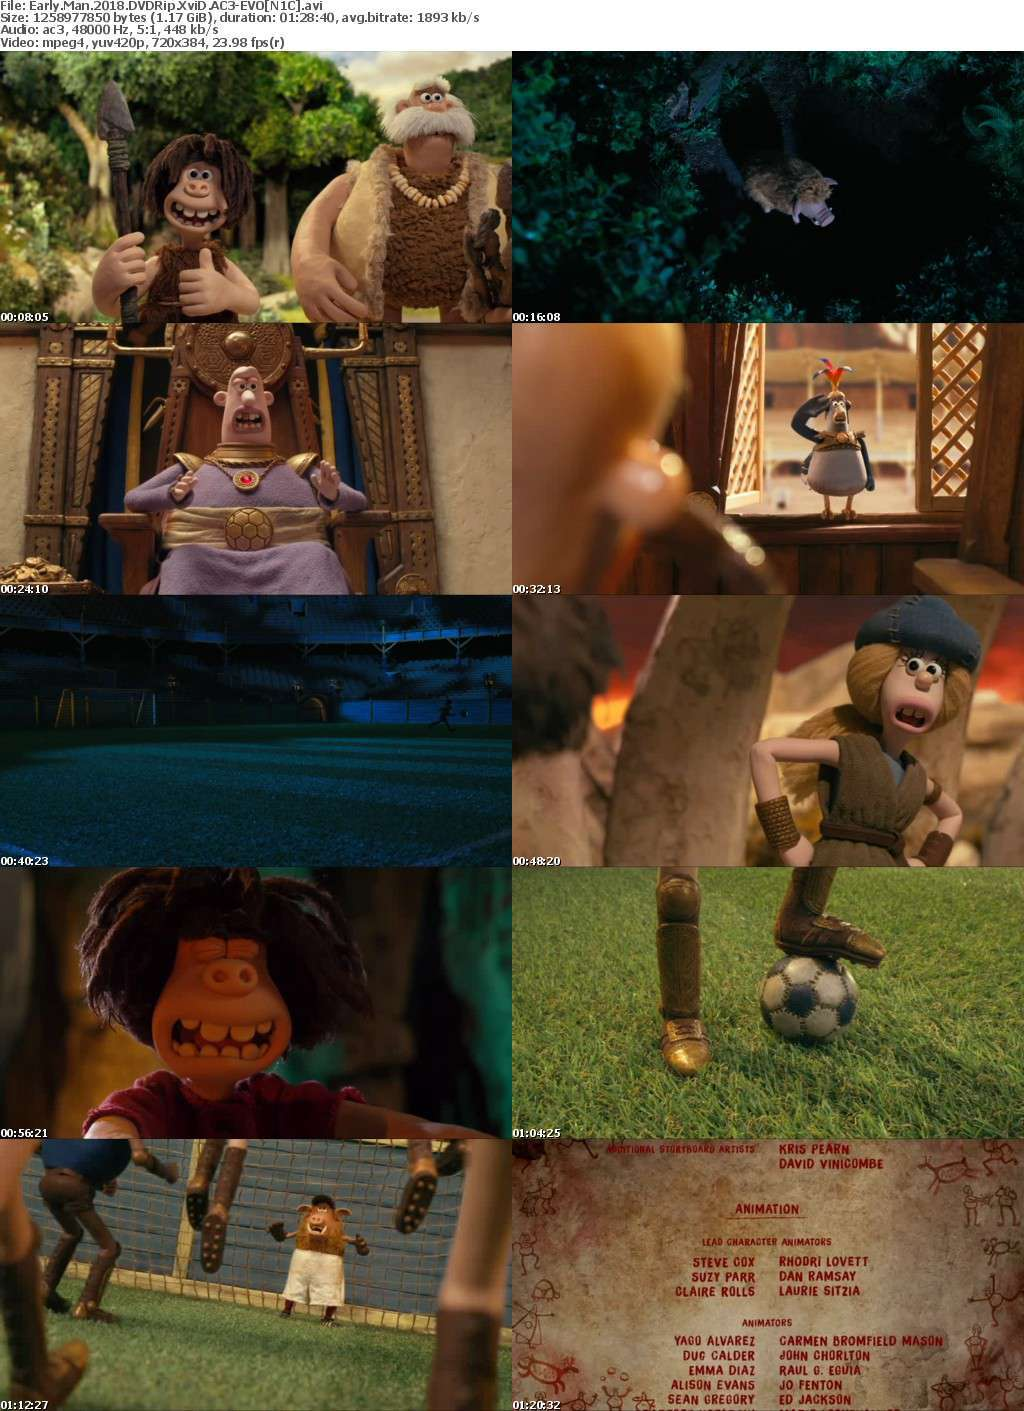 Early Man 2018 DVDRip XviD AC3-EVO[N1C]